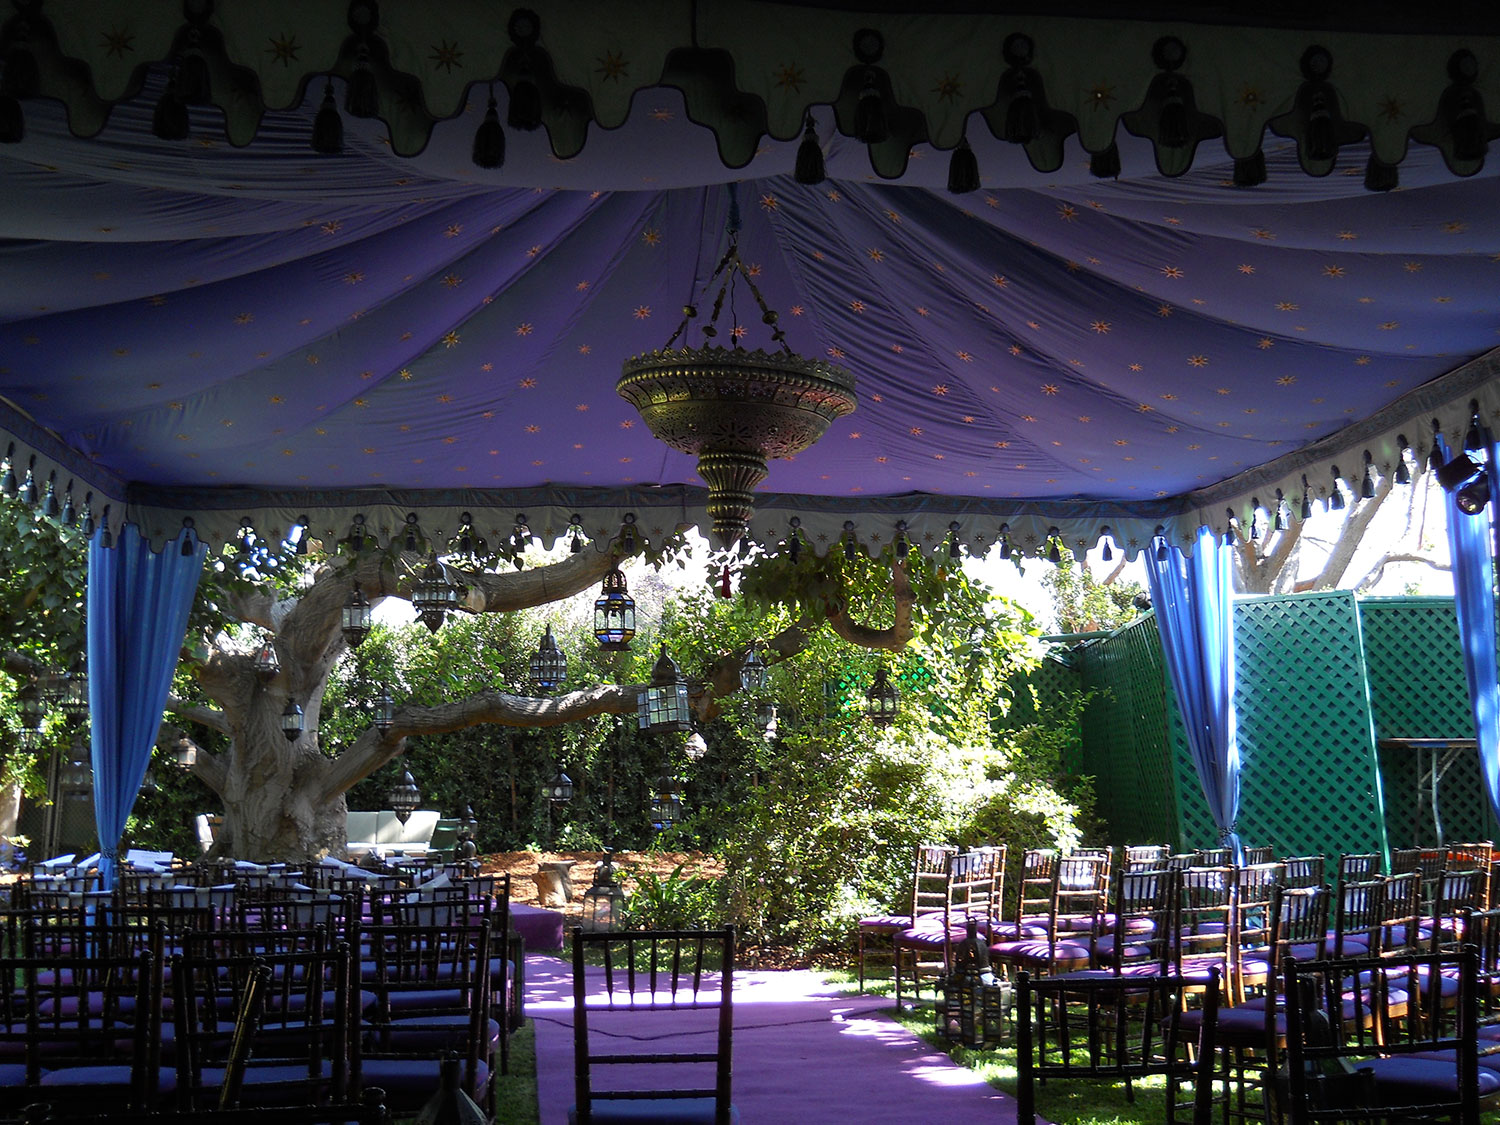 raj-tents-moroccan-theme-ceremony-tent.jpg